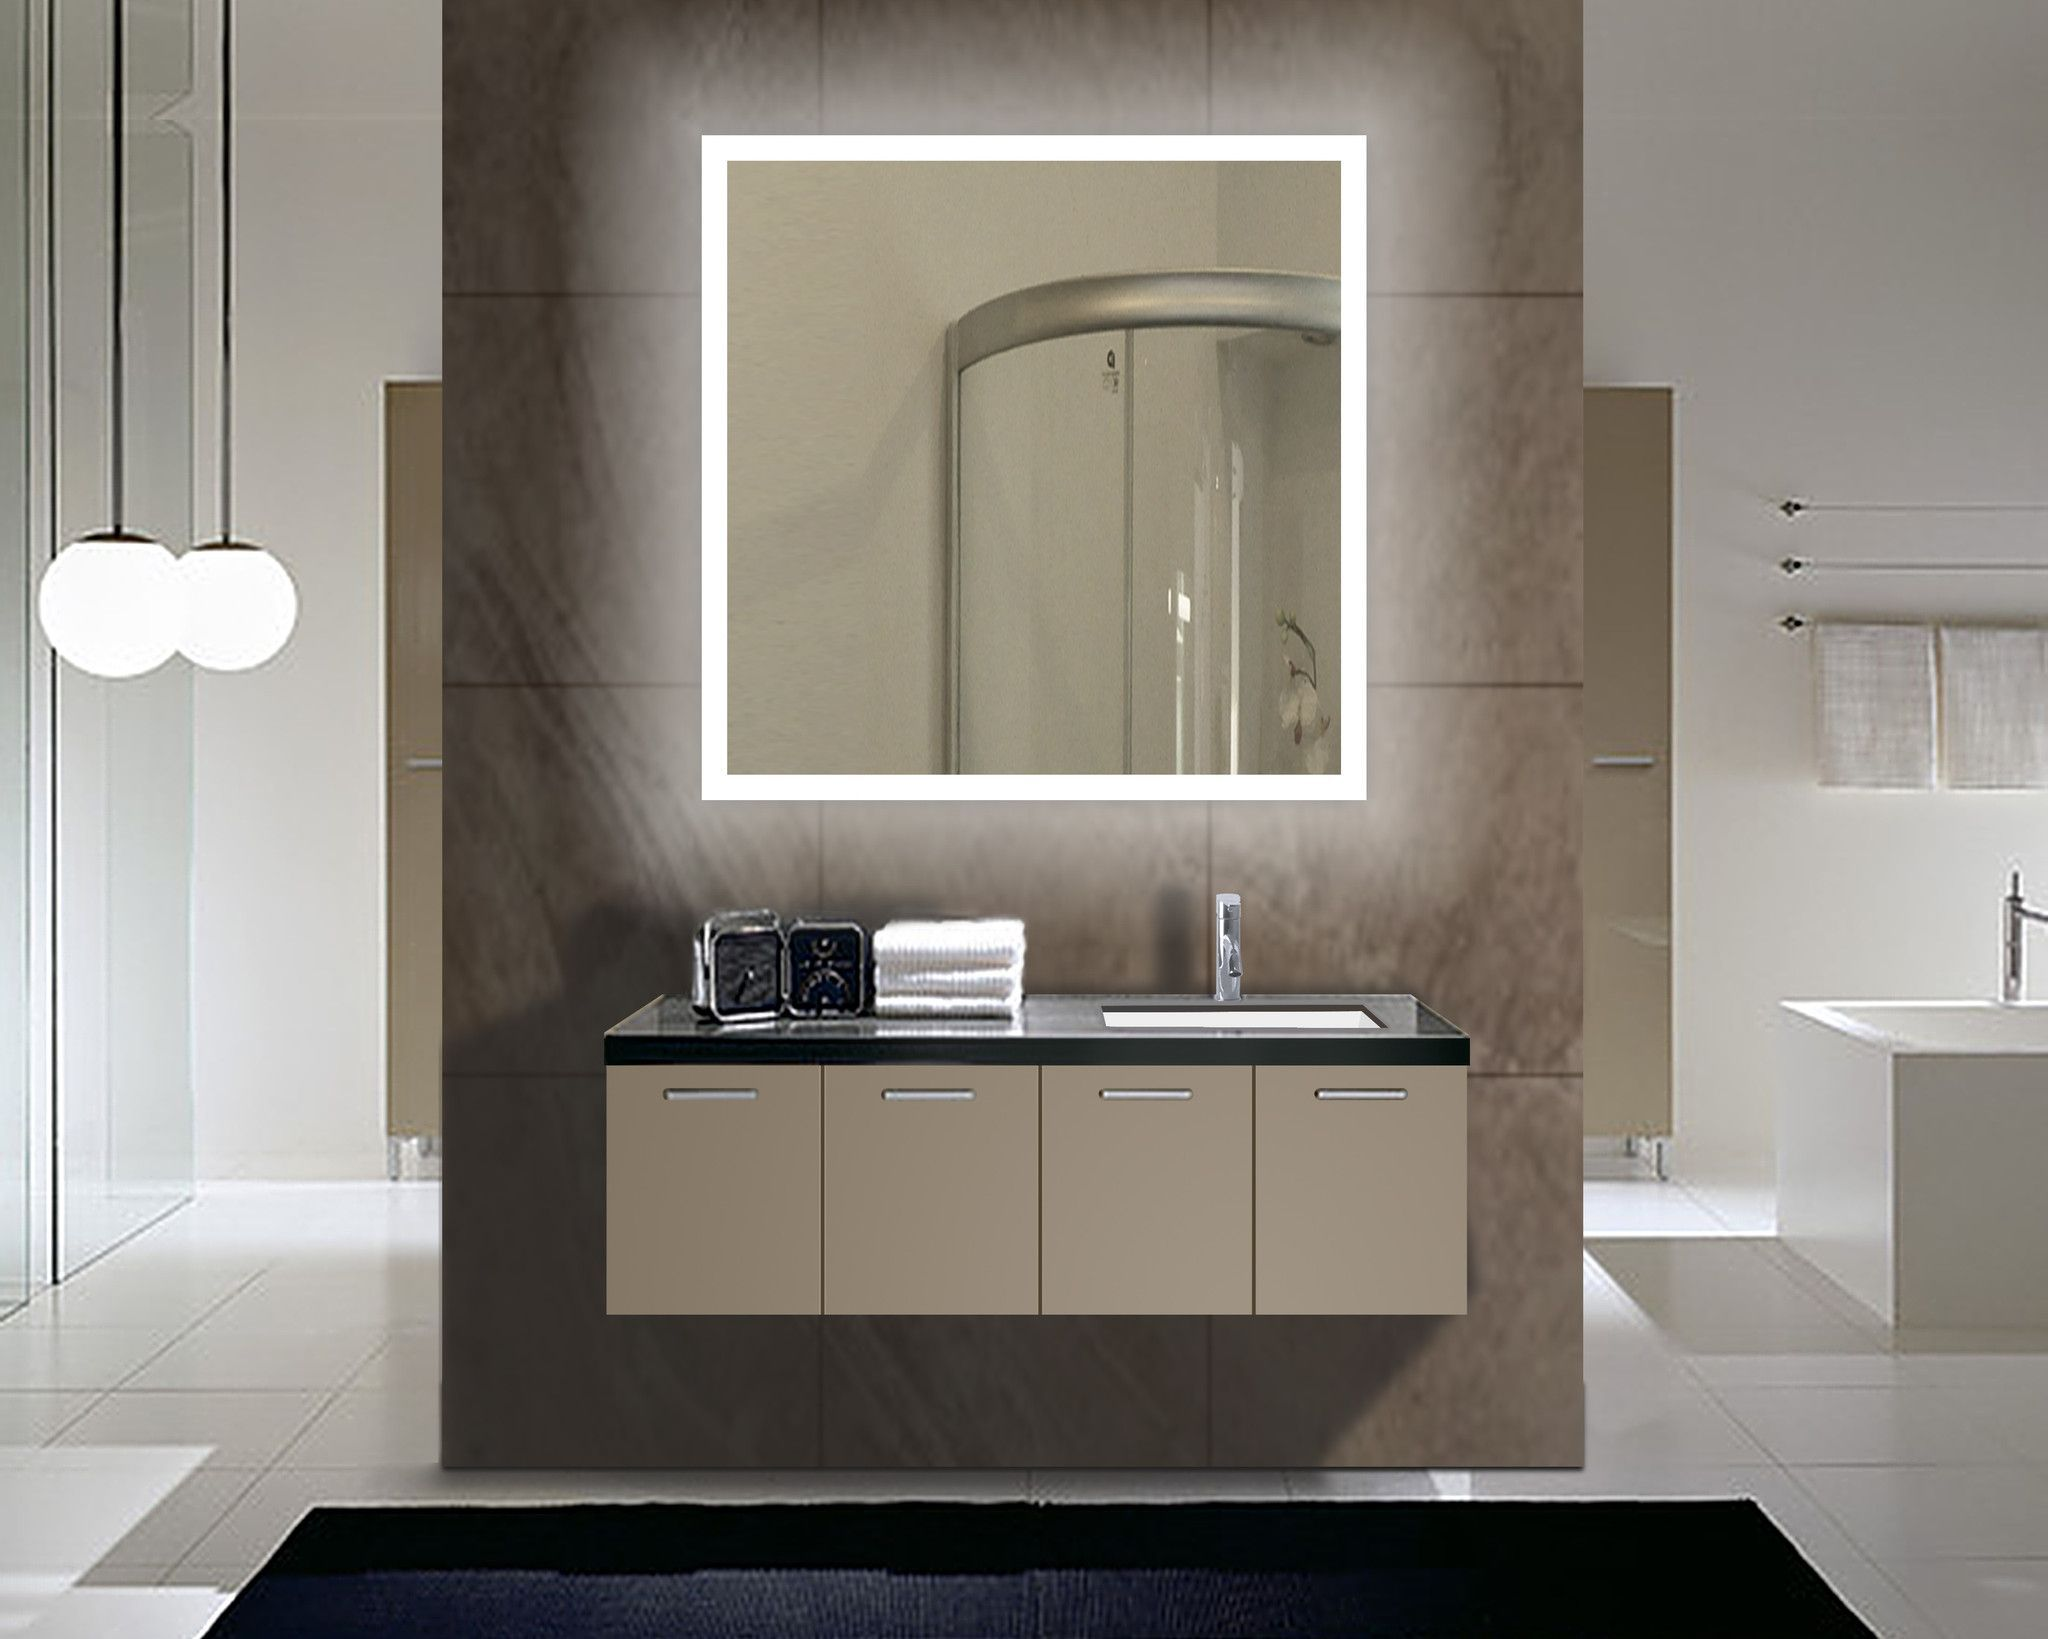 Backlit Lighted Mirror Size H 36 X W 36 X D 2 Inches This Product Features 110 V Wiring 3300 L Bathroom Mirror Large Bathroom Mirrors Mirror Wall Bathroom